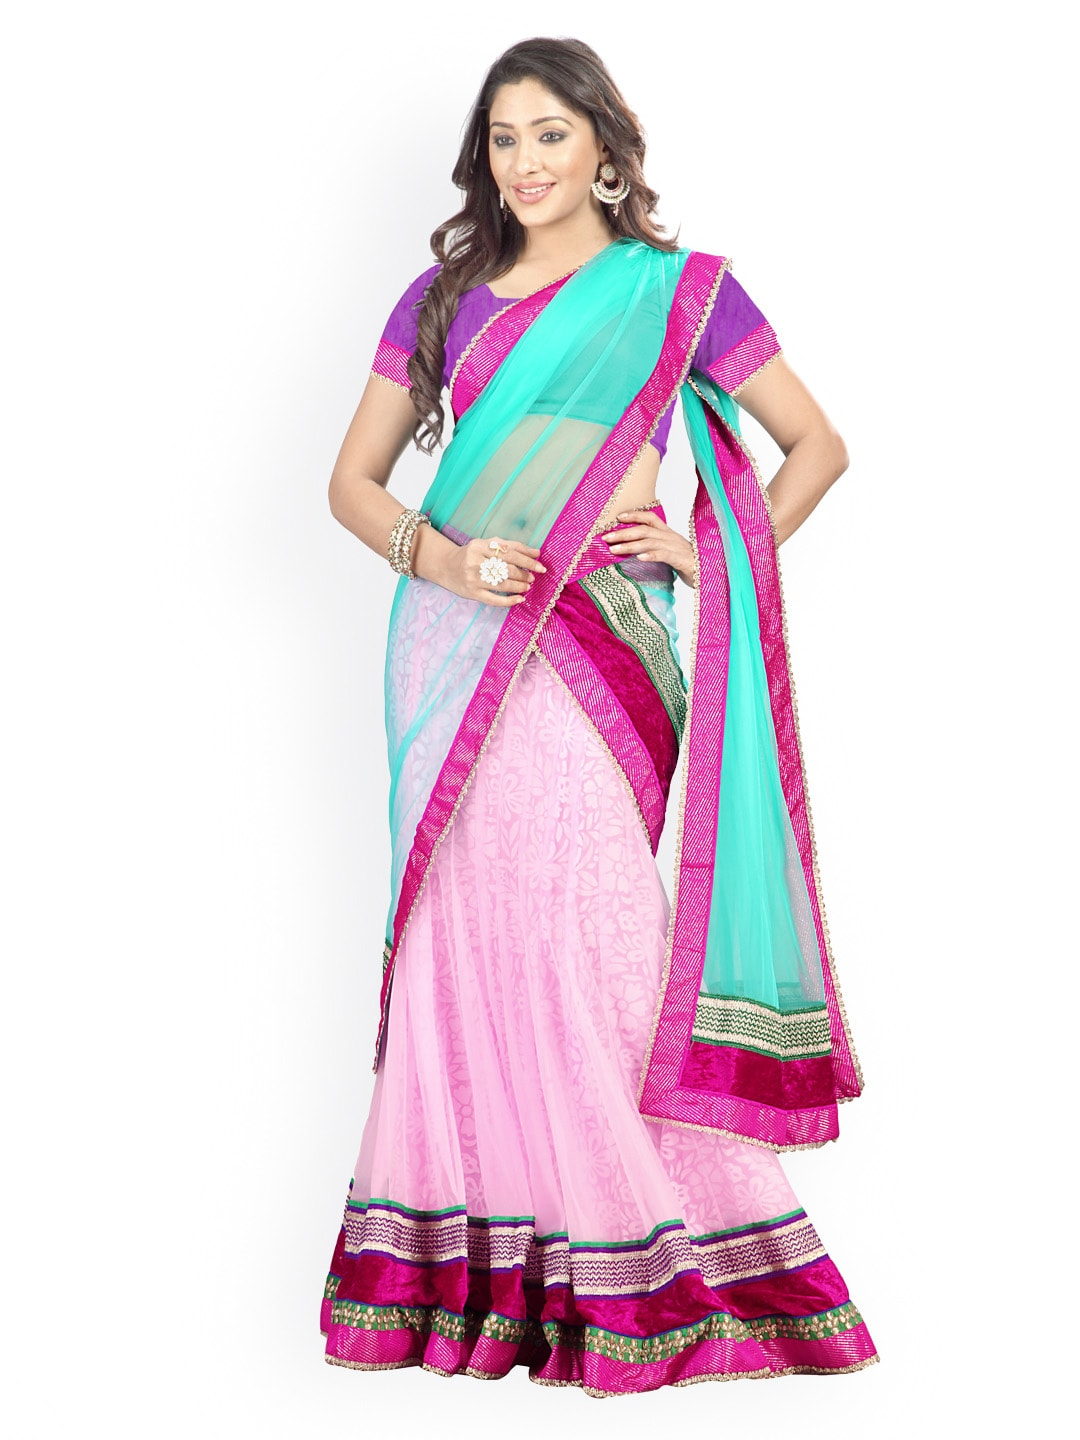 Florence Light Pink & Purple Semi-Stitched Brasso Net Lehenga Choli with Dupatta